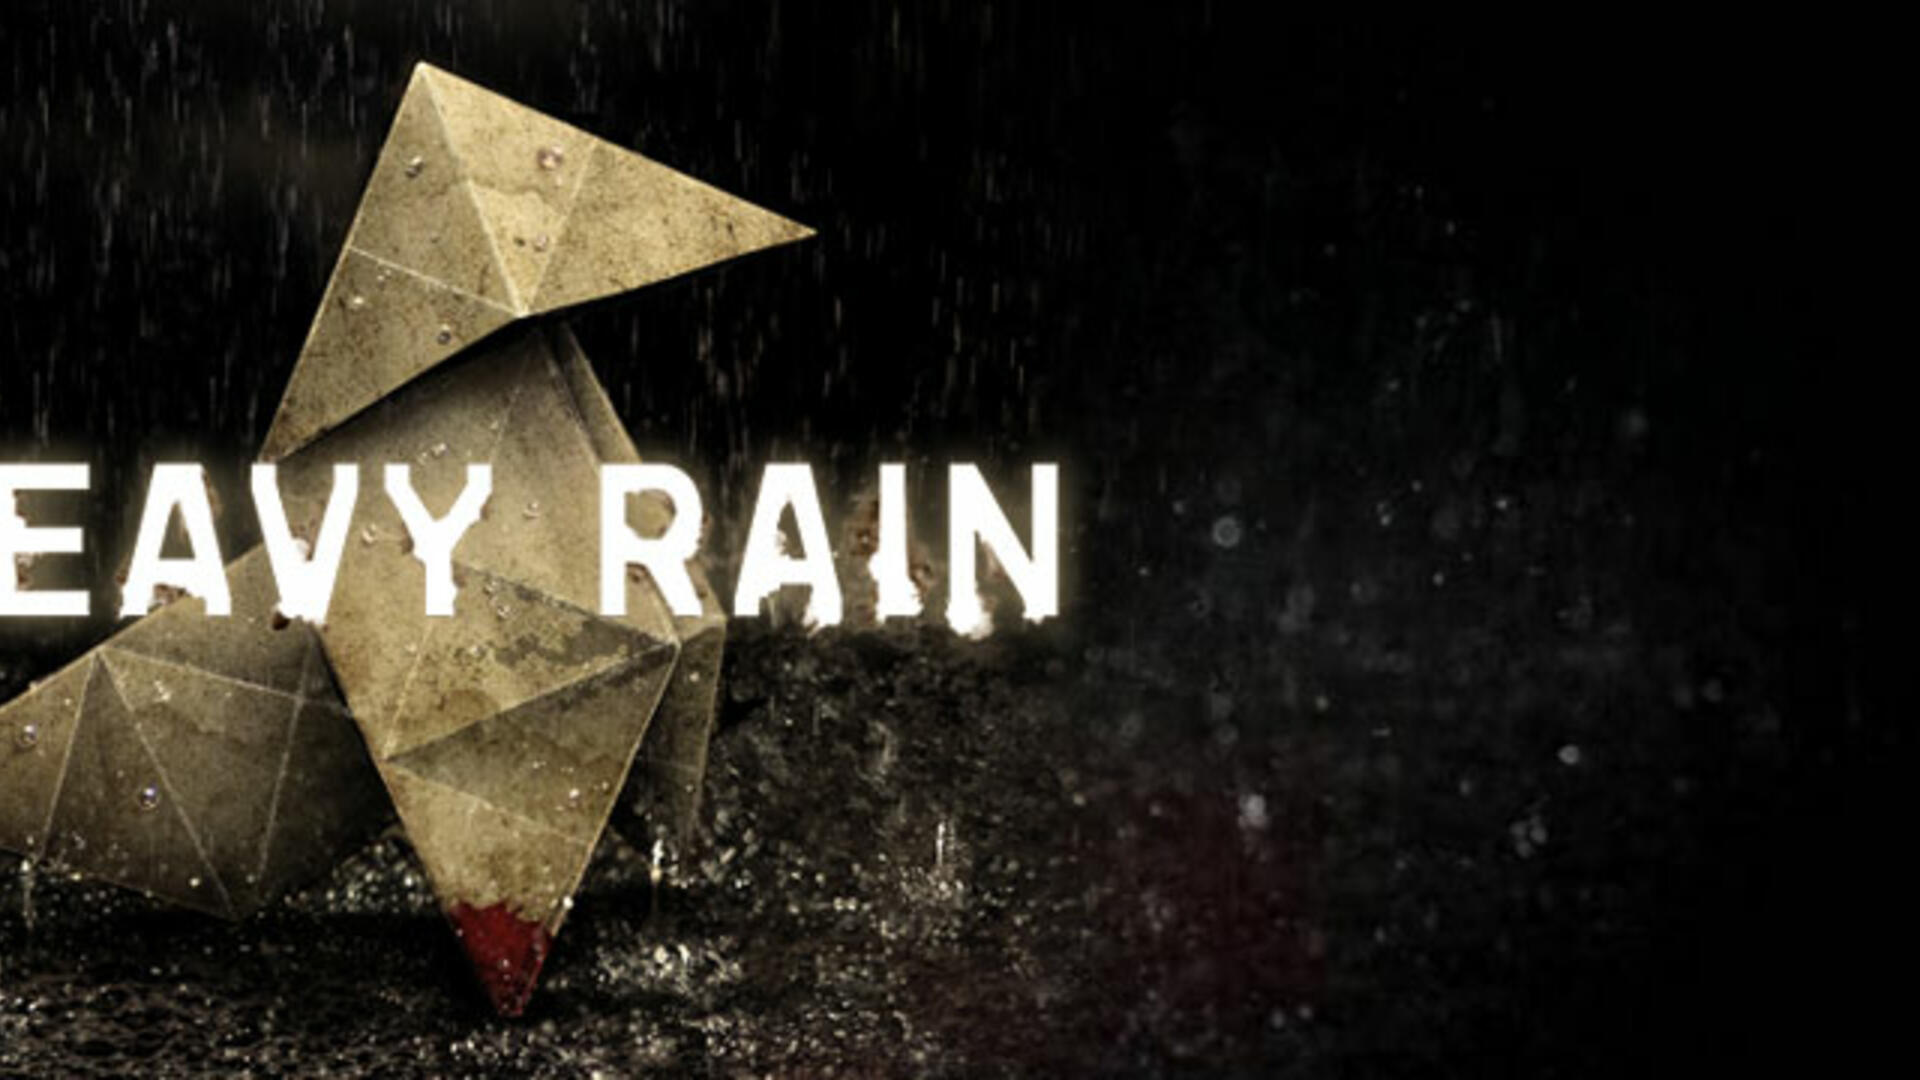 Heavy Rain Endings Guide - How to Get All Endings and How Many Are There, Best Ending, Worst Ending